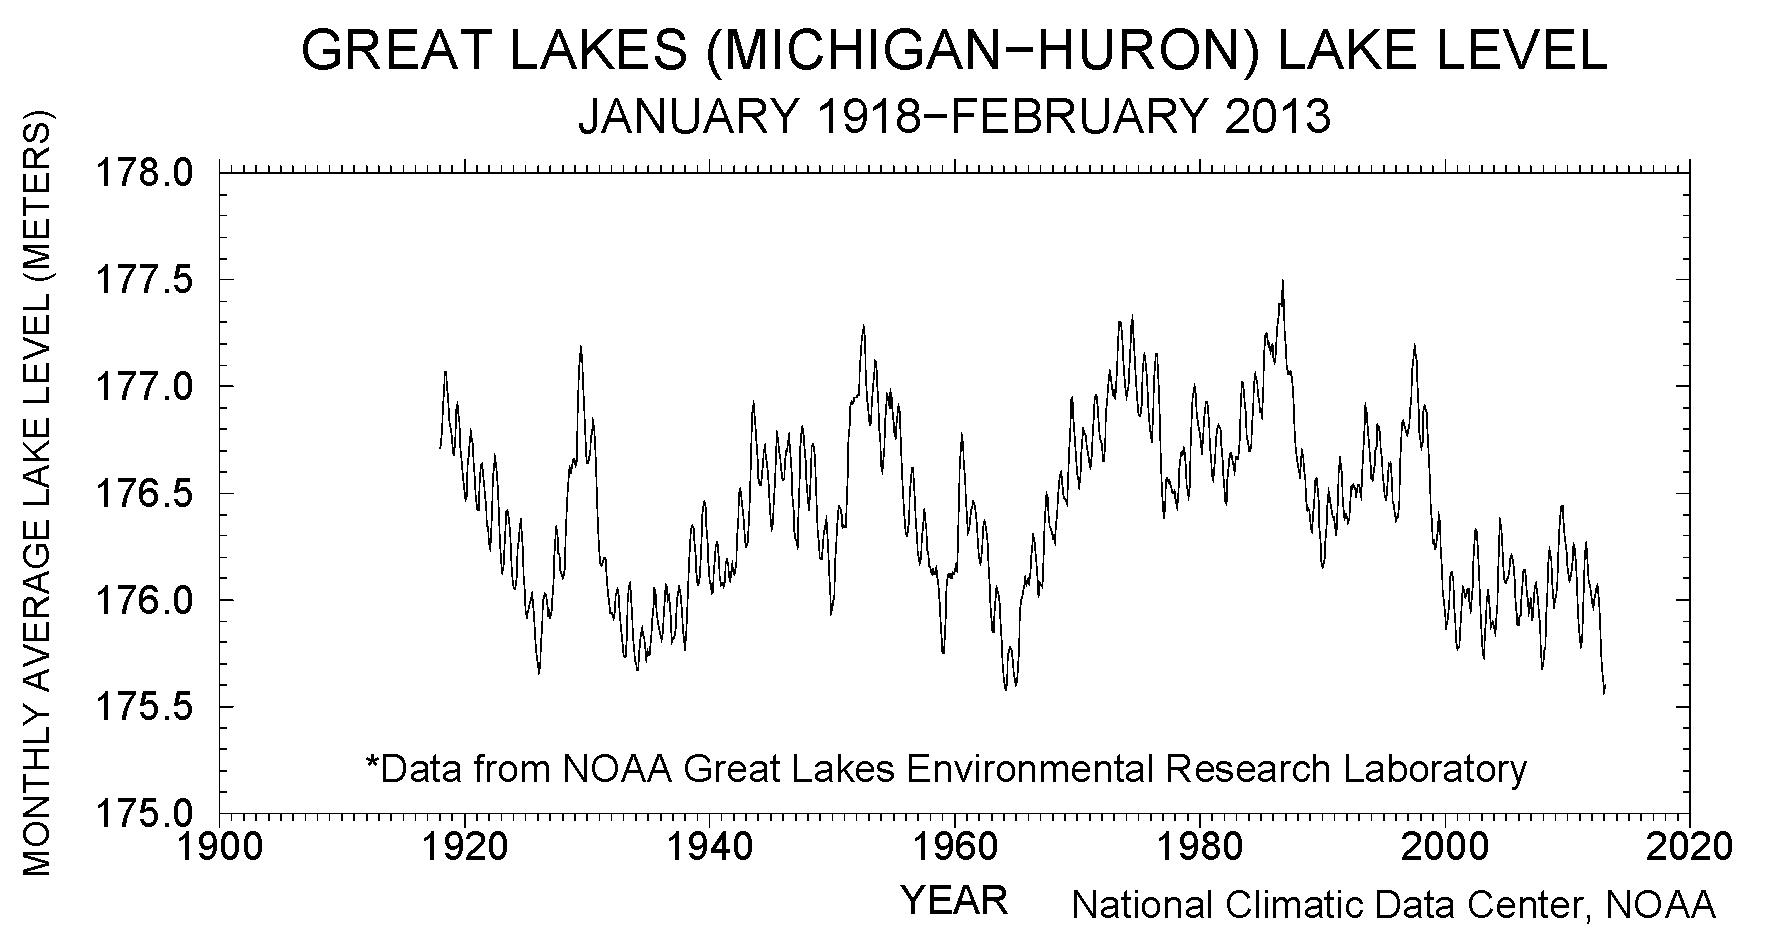 Monthly level (meters) of Great Lakes Michigan and Huron, January 1918-February 2013